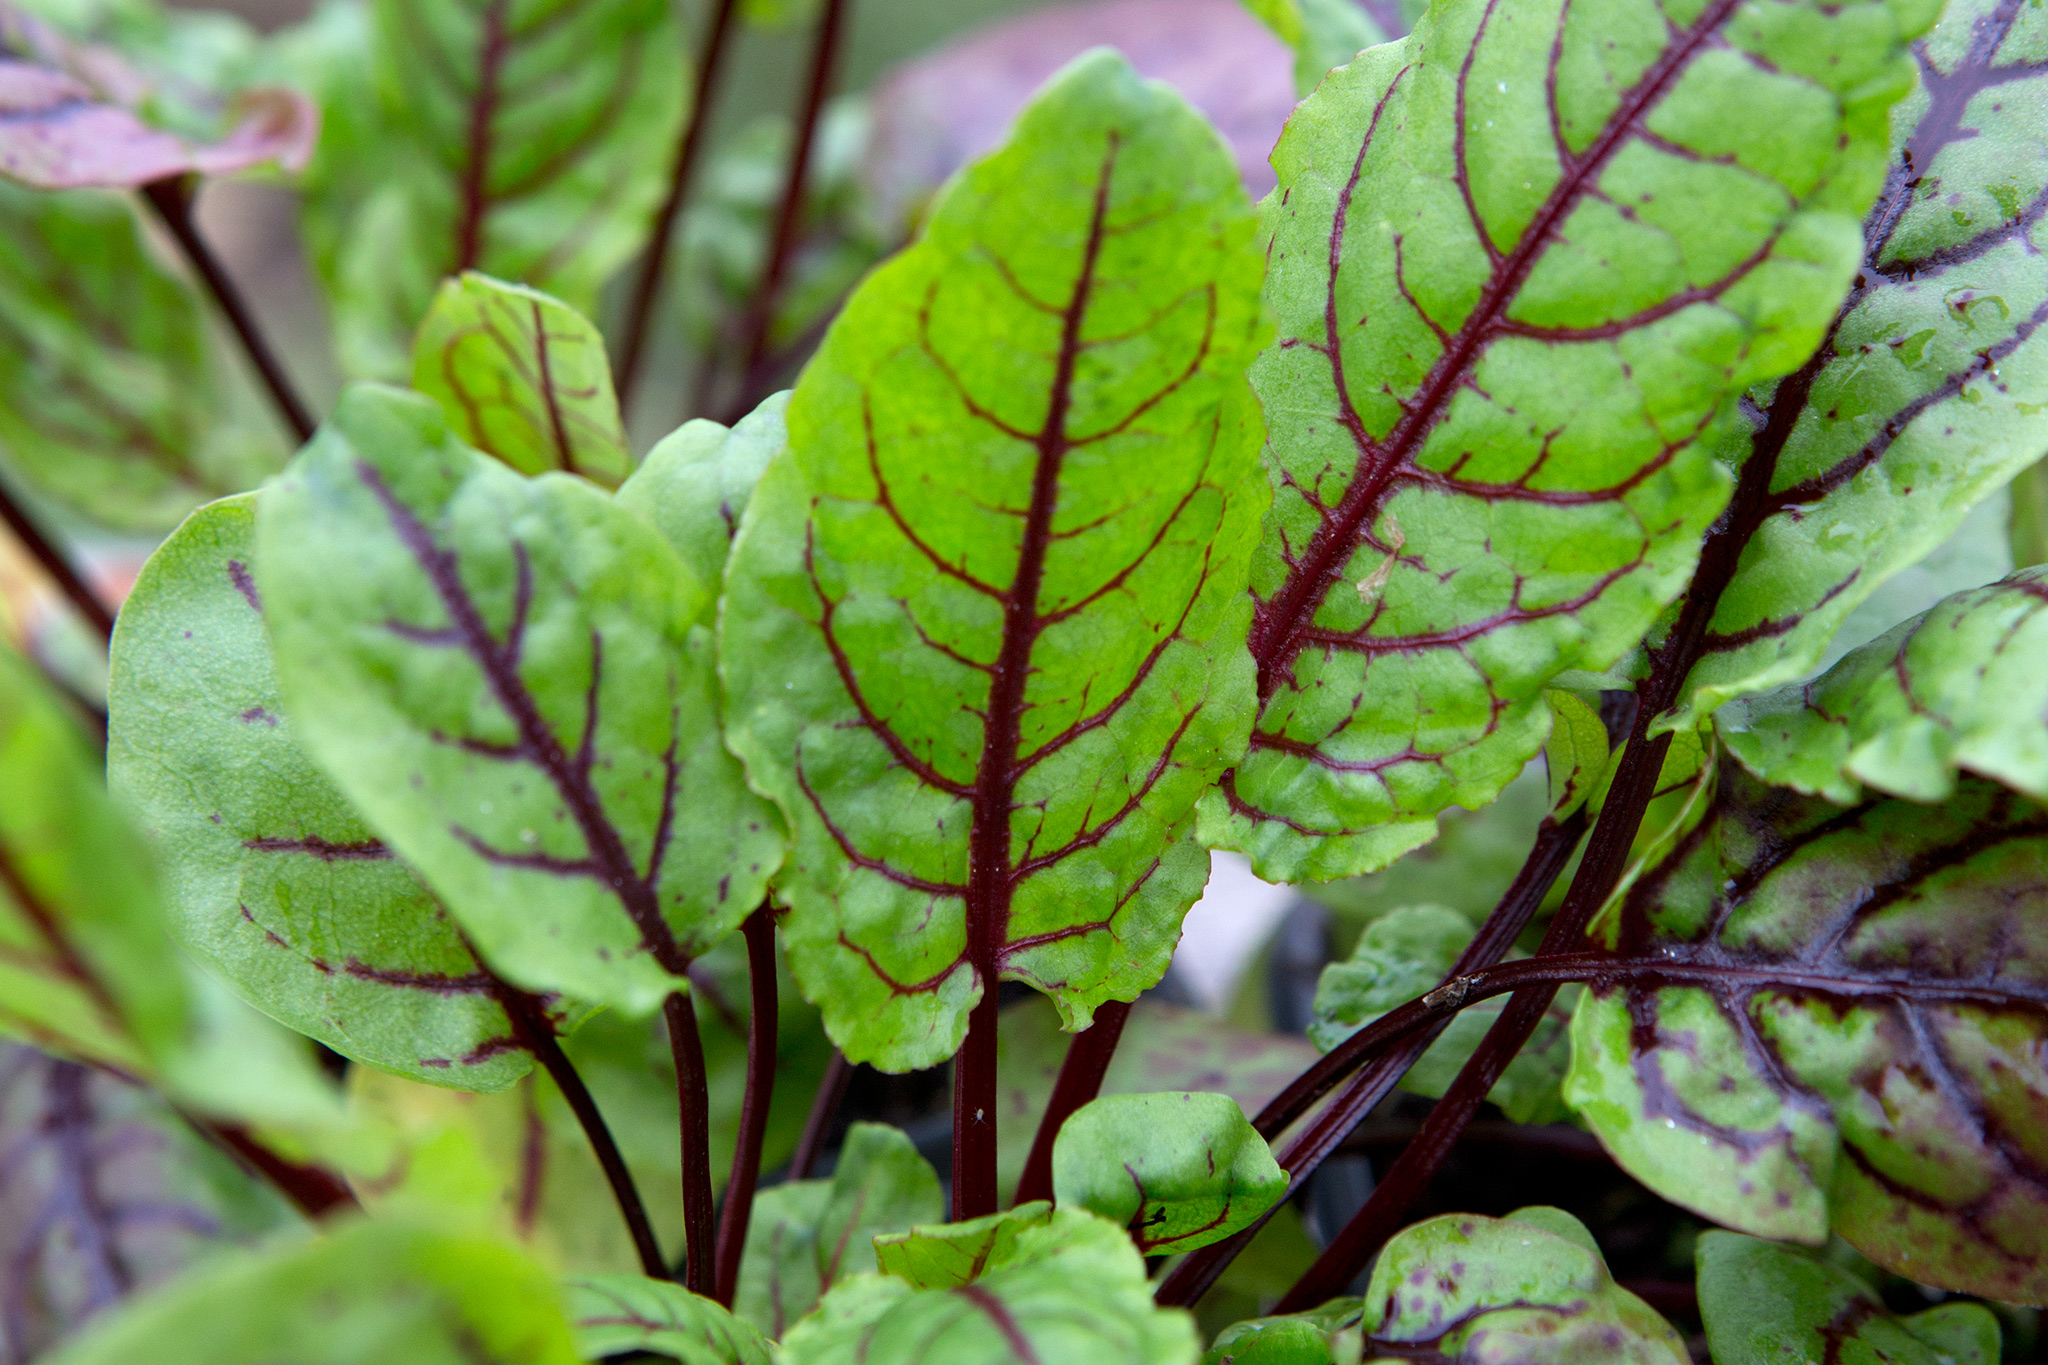 Sorrel leaves